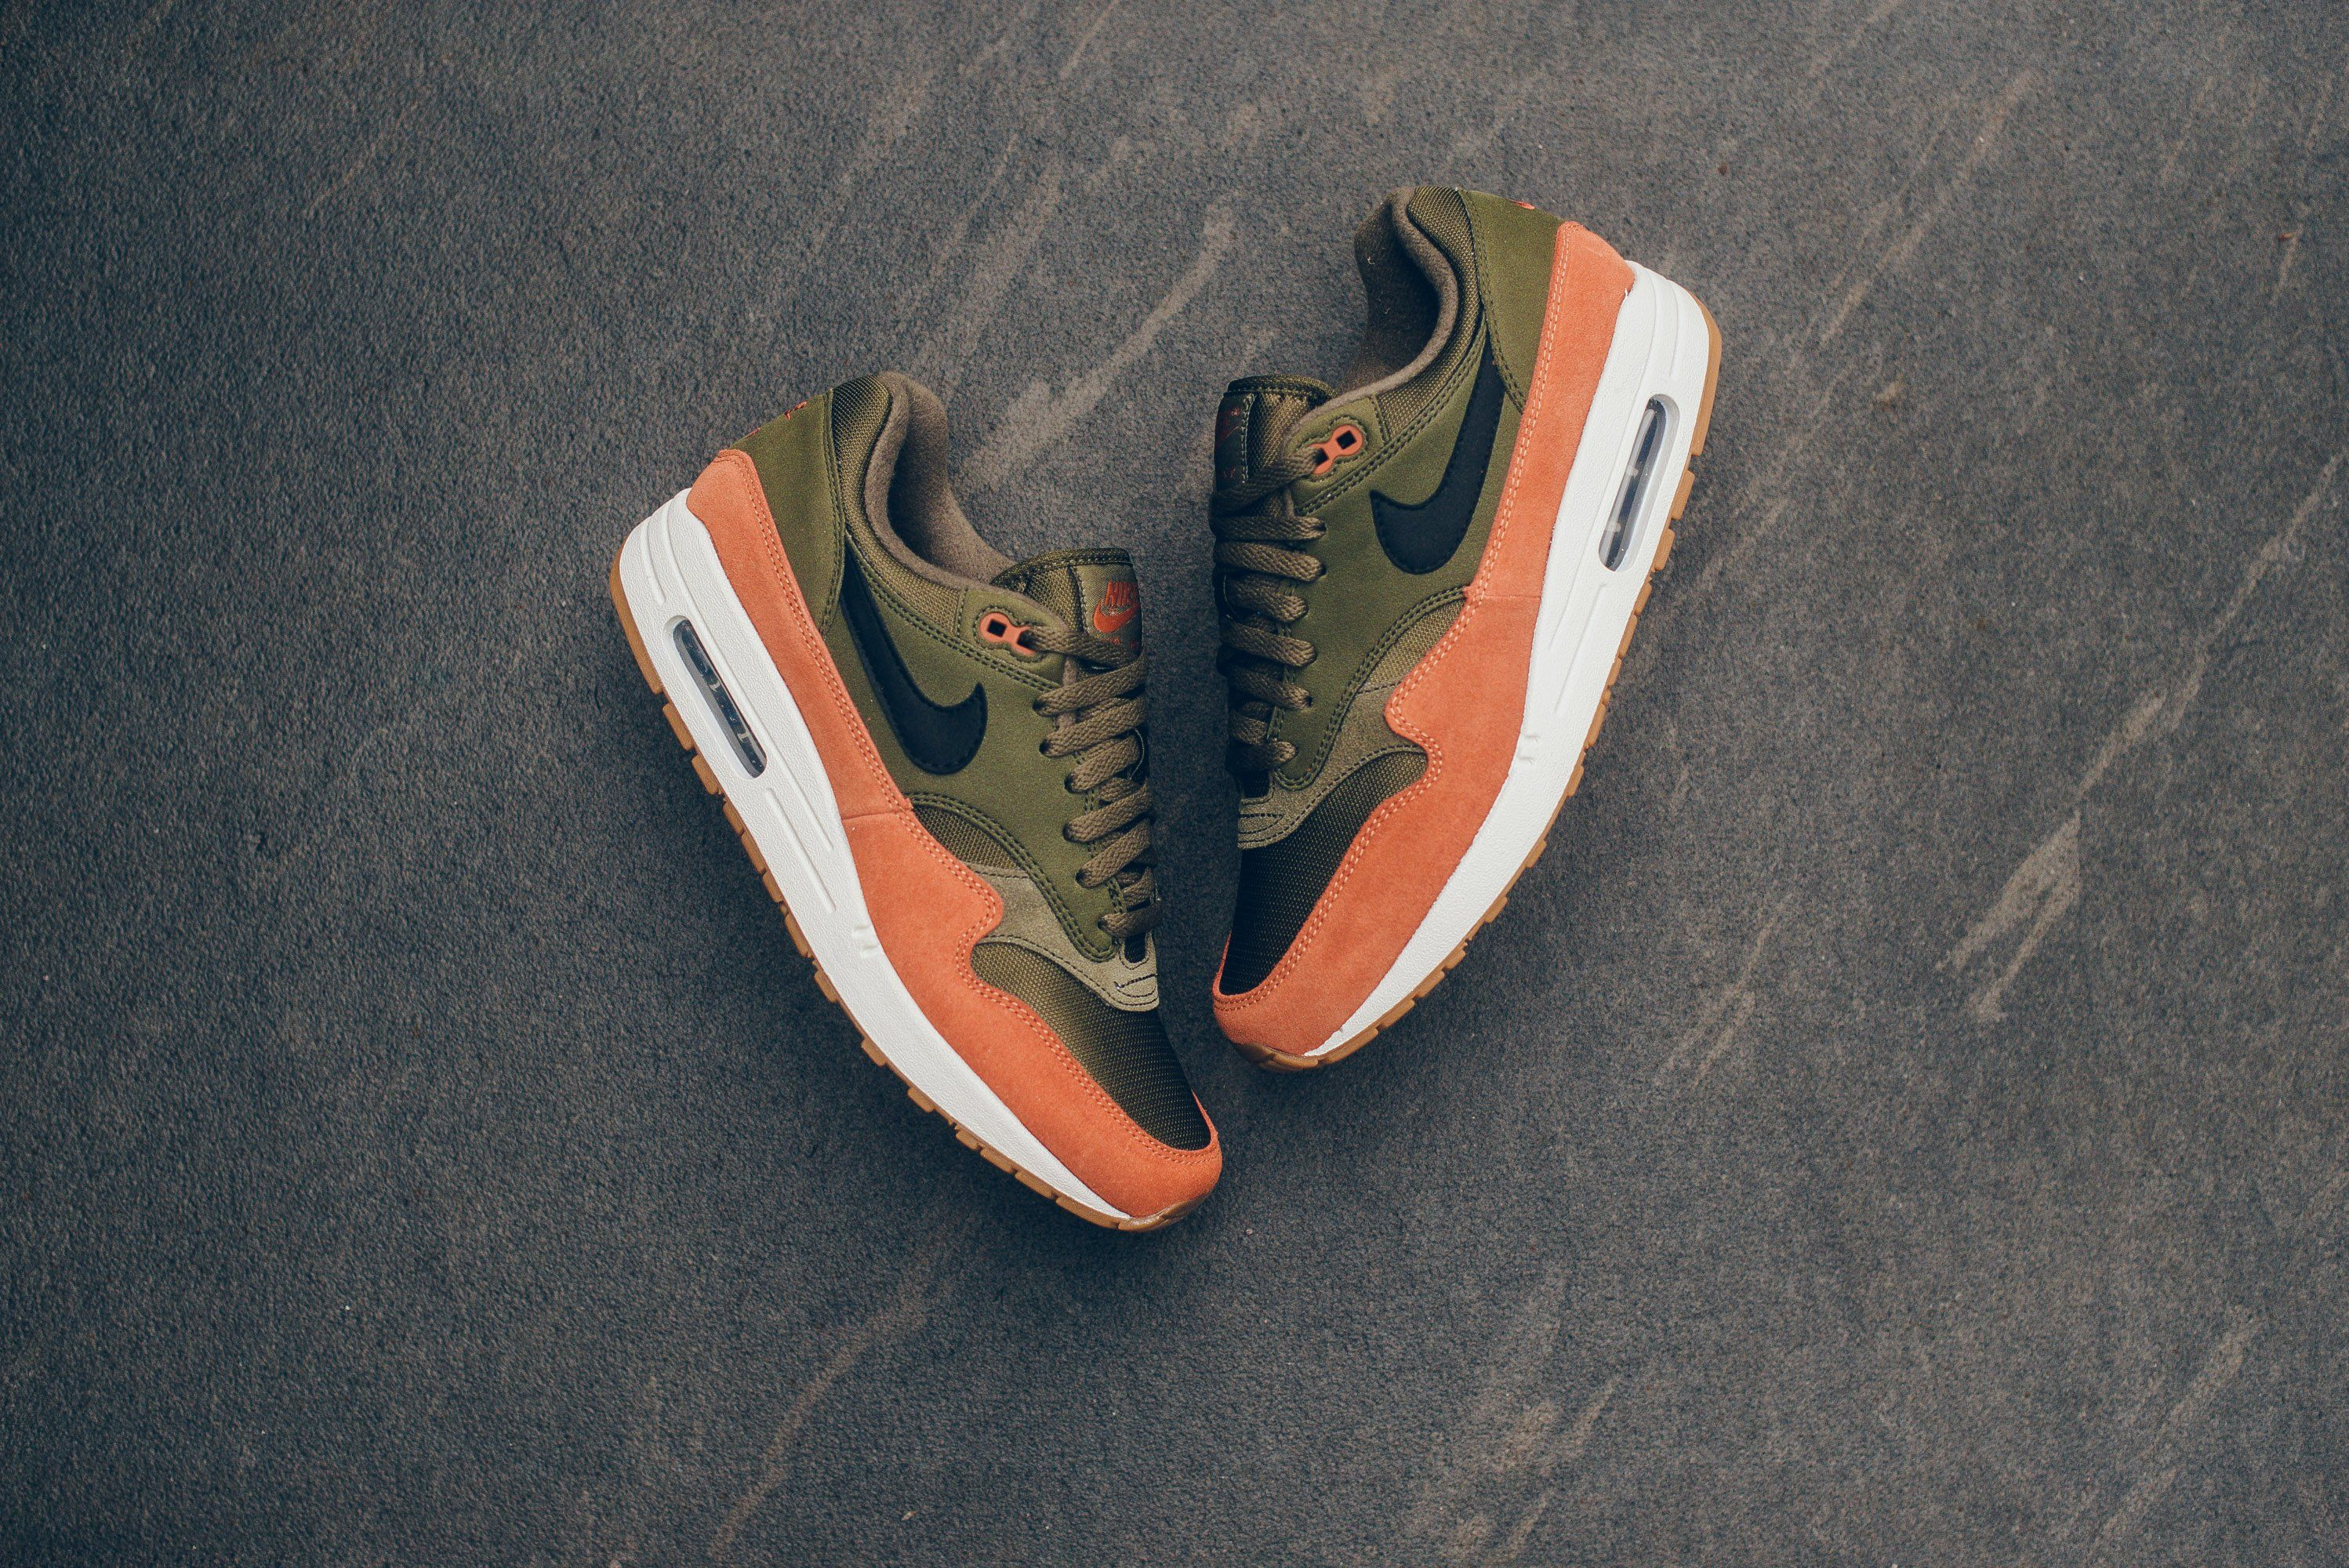 Nike Air Max 1 Olive CanvasBlackDark Russet from Sneaker